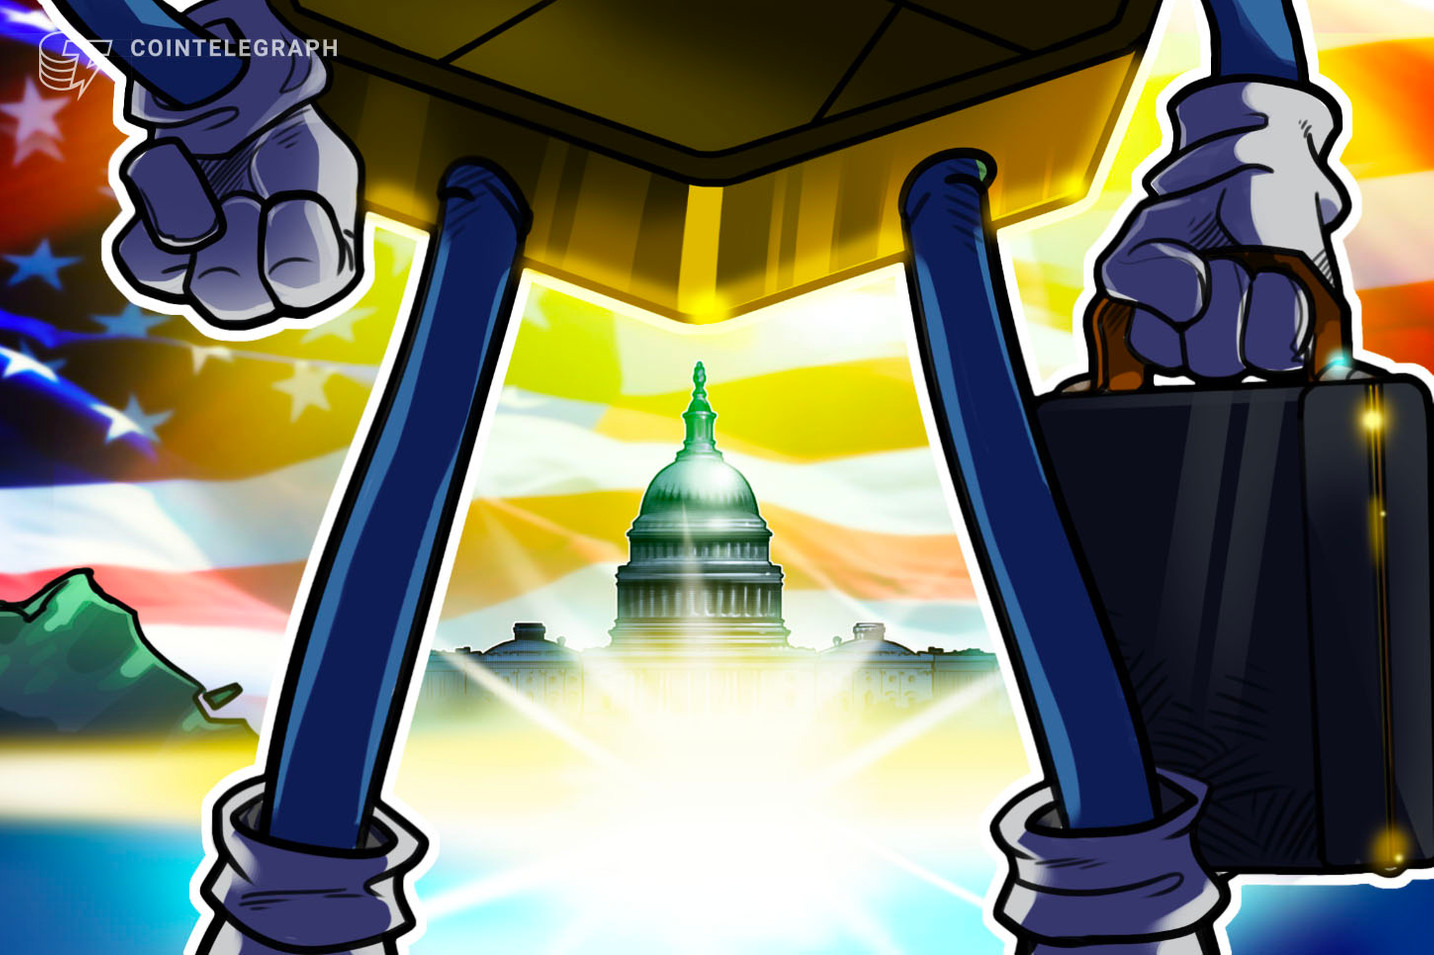 From 'not money' to 'staggeringly great': What US presidents have said about crypto and blockchain